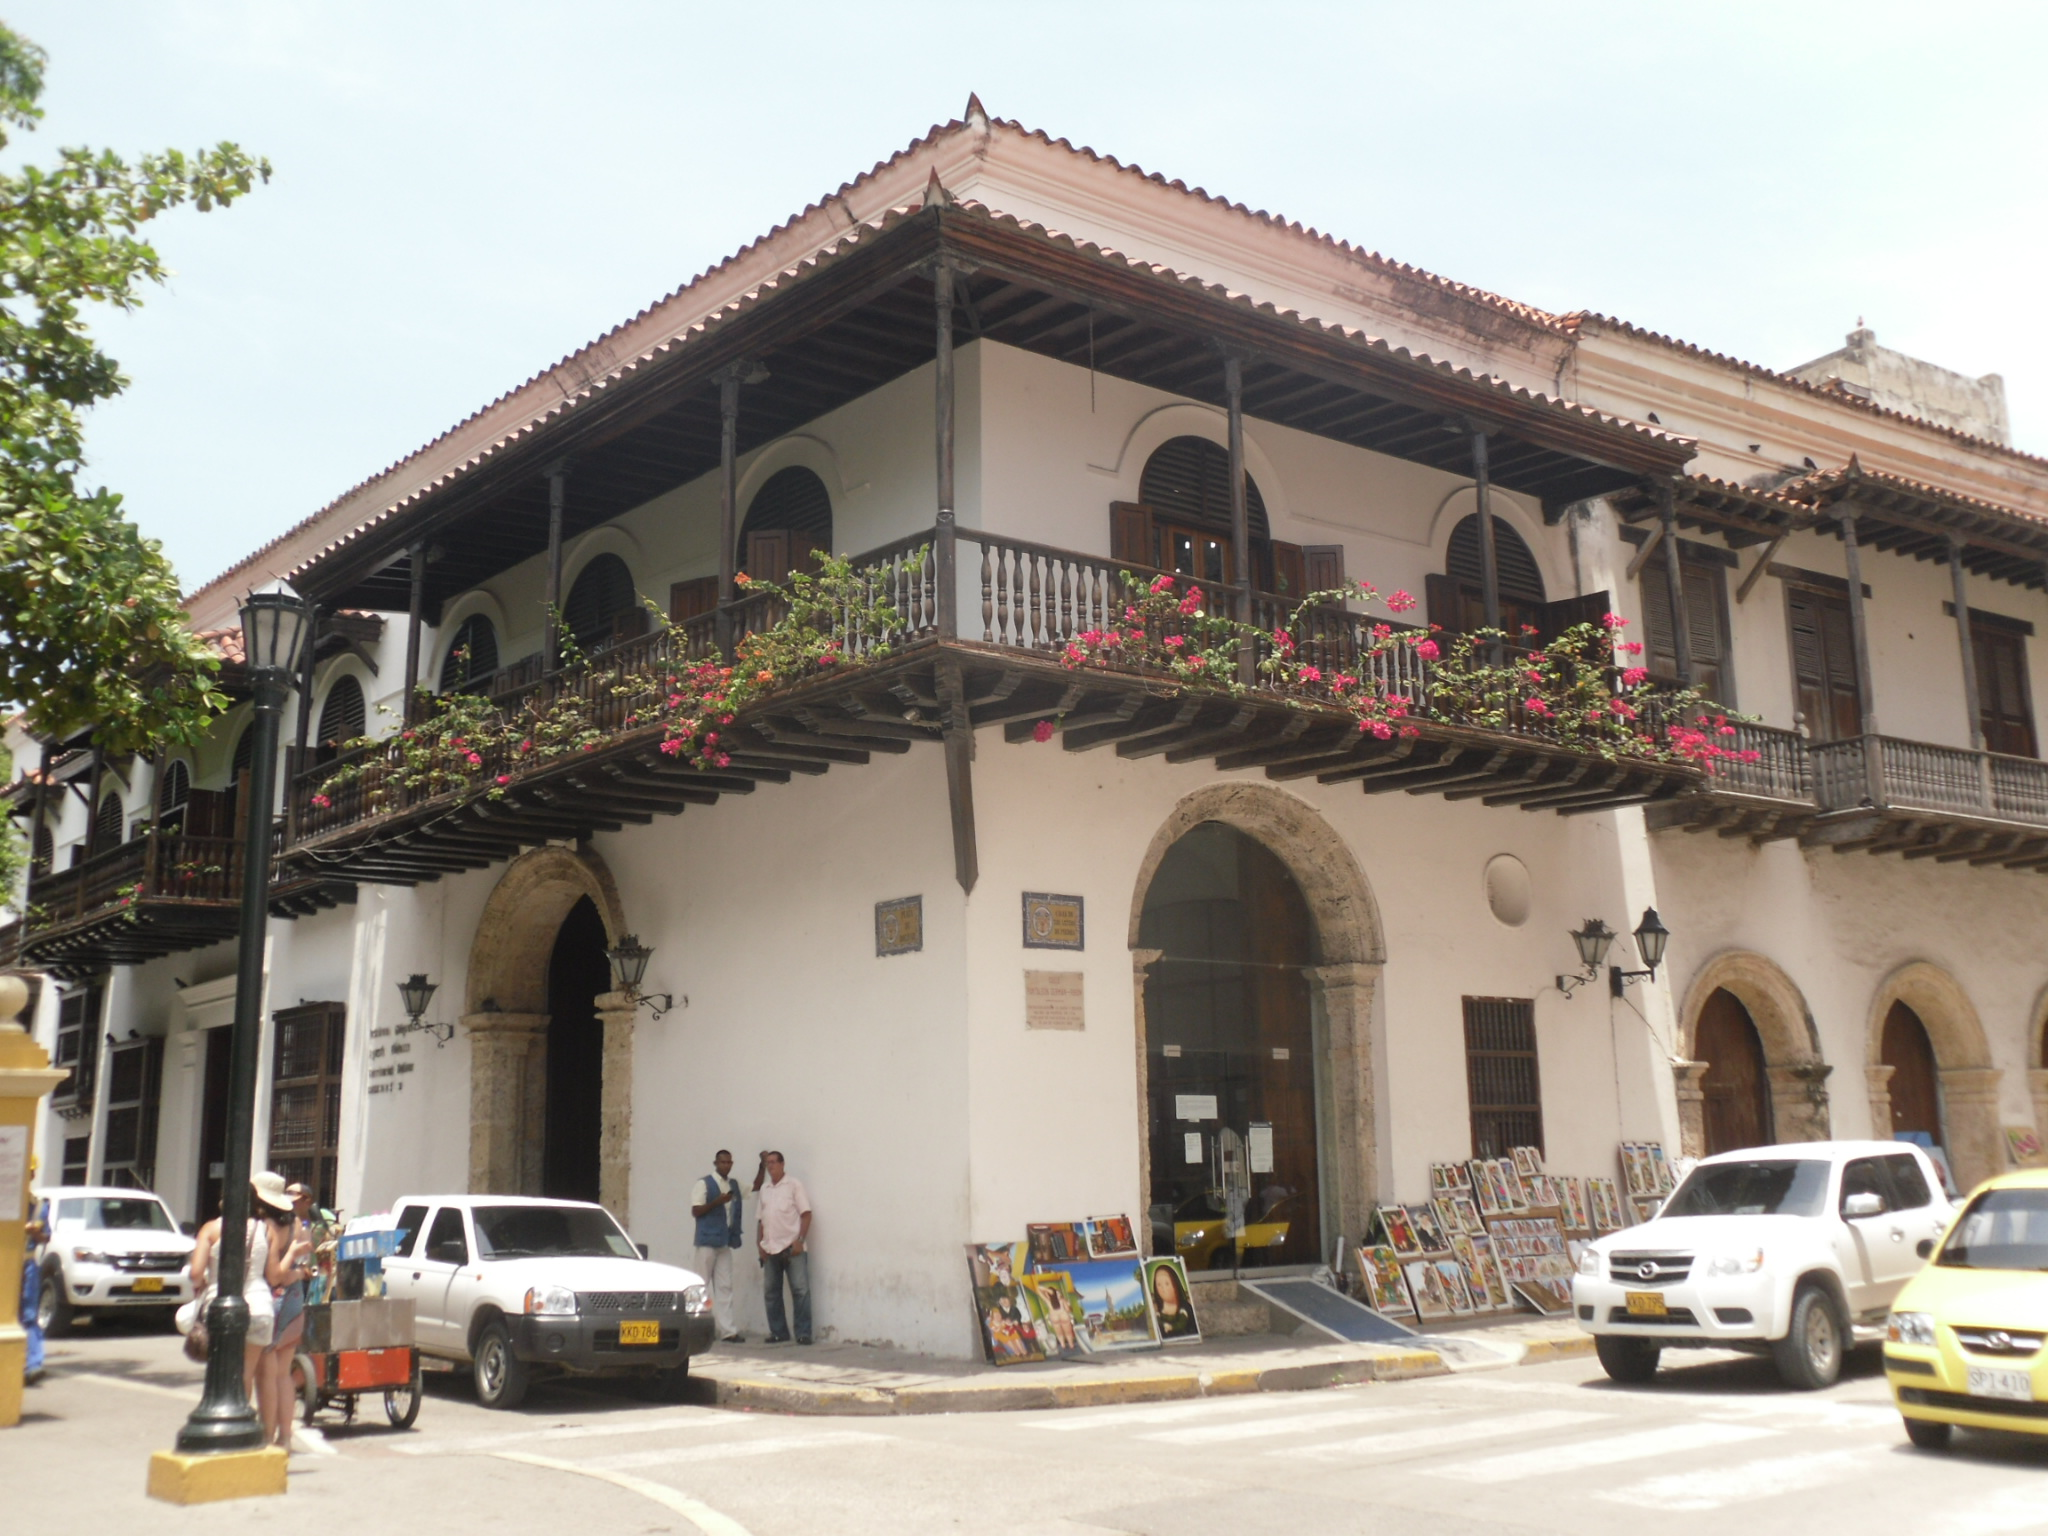 Selling art in Cartagena Colombia